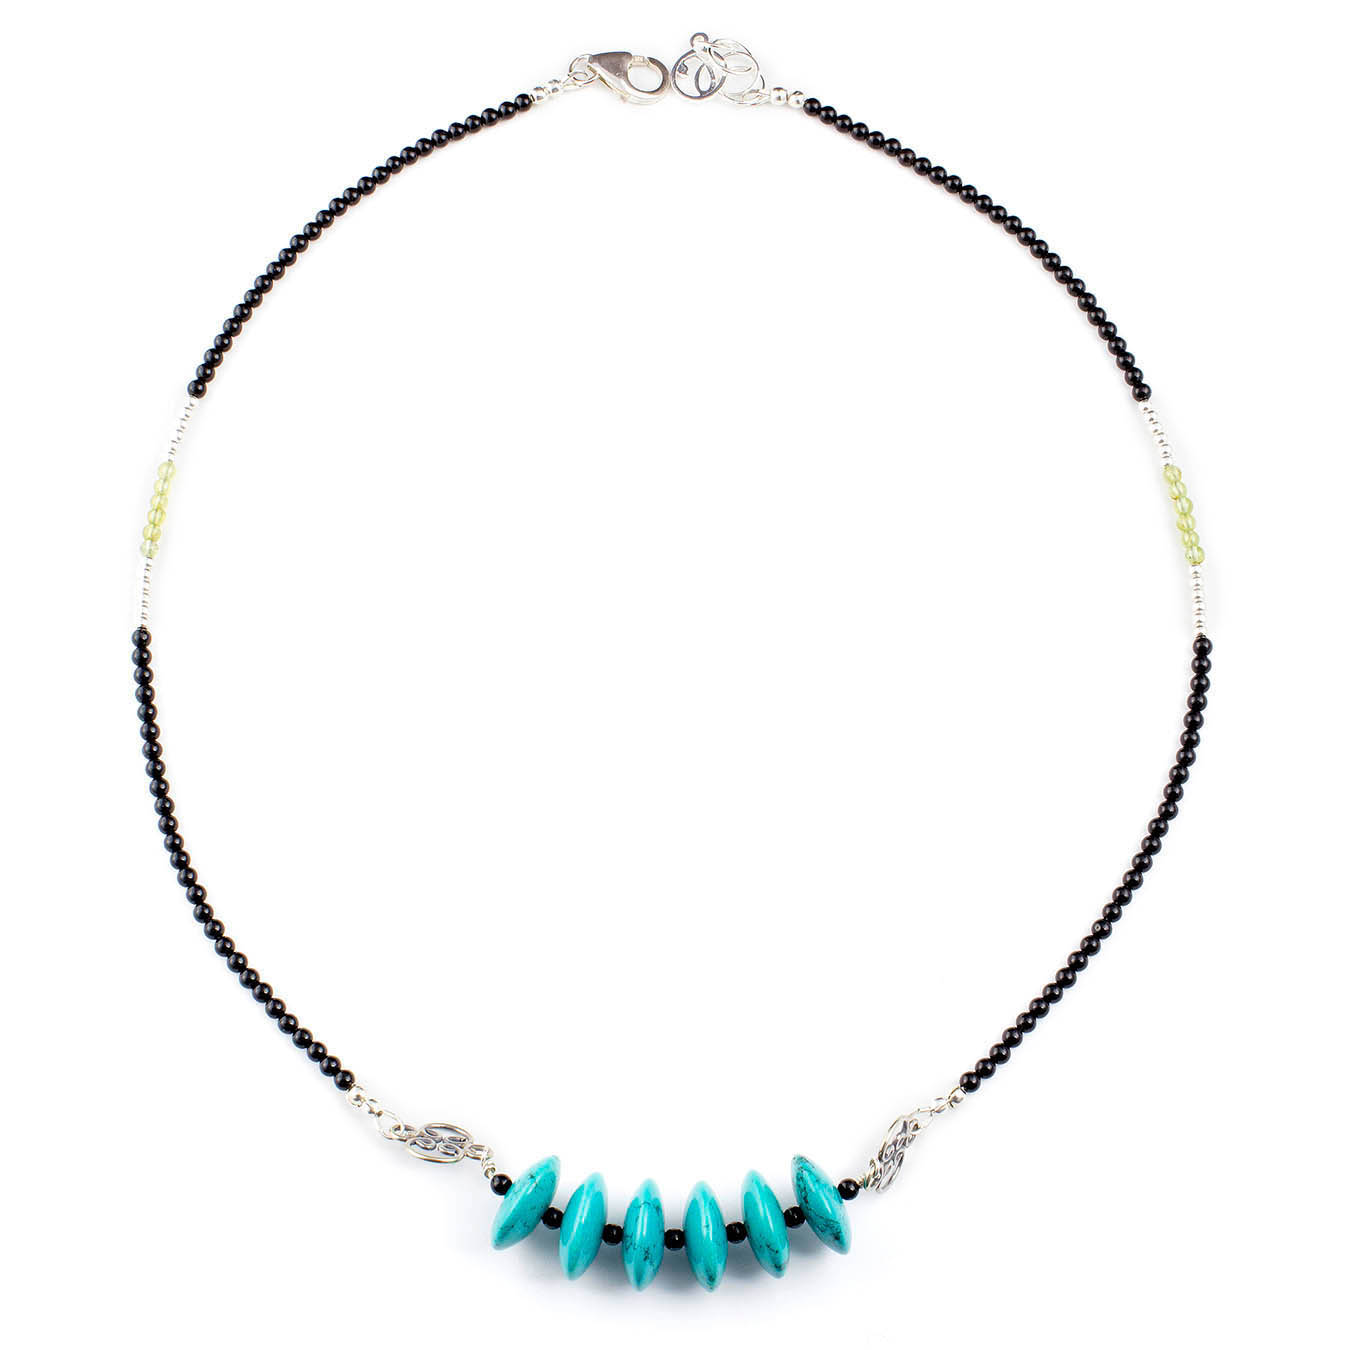 Handmade collar jewelry necklace made of turquoise, peridot and bali